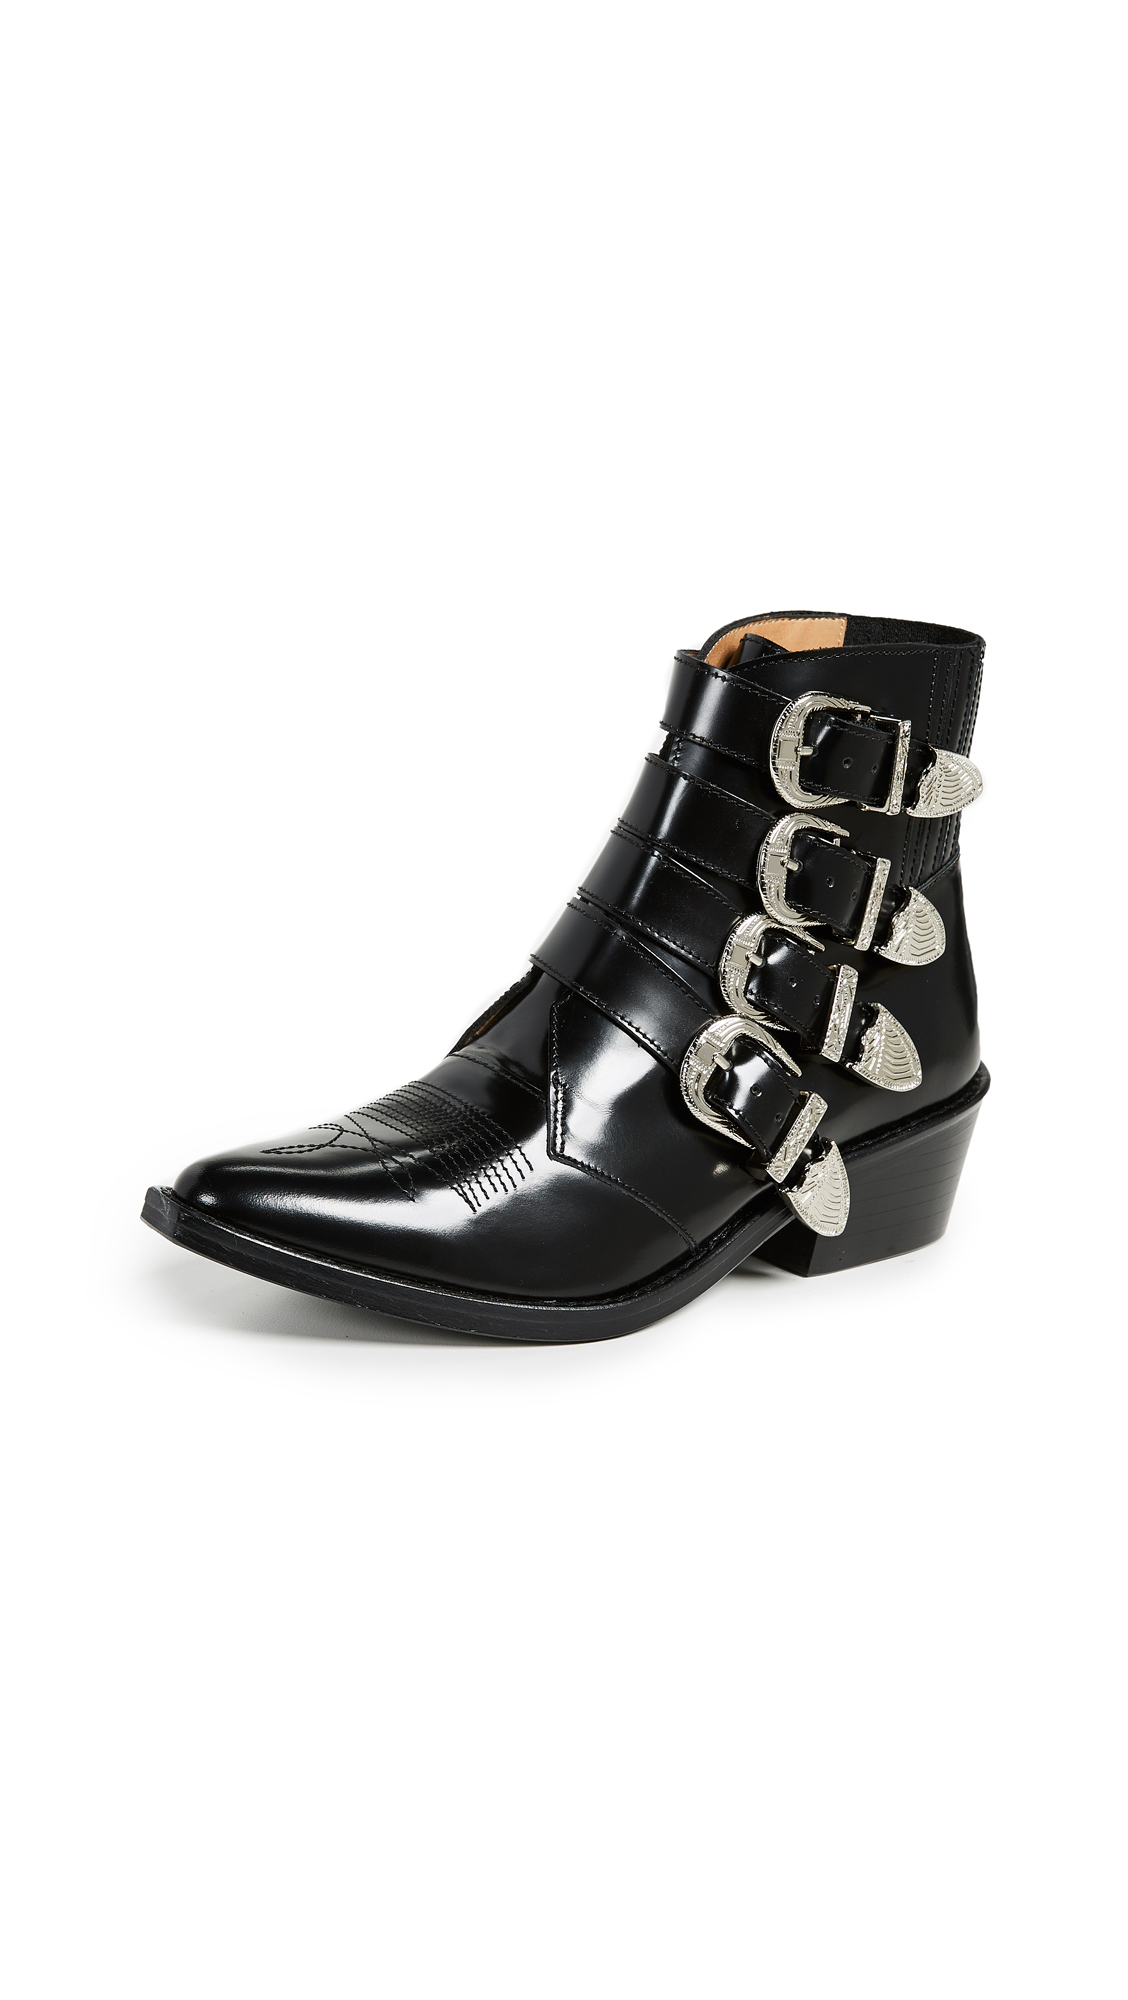 Toga Pulla Buckled Booties - Black